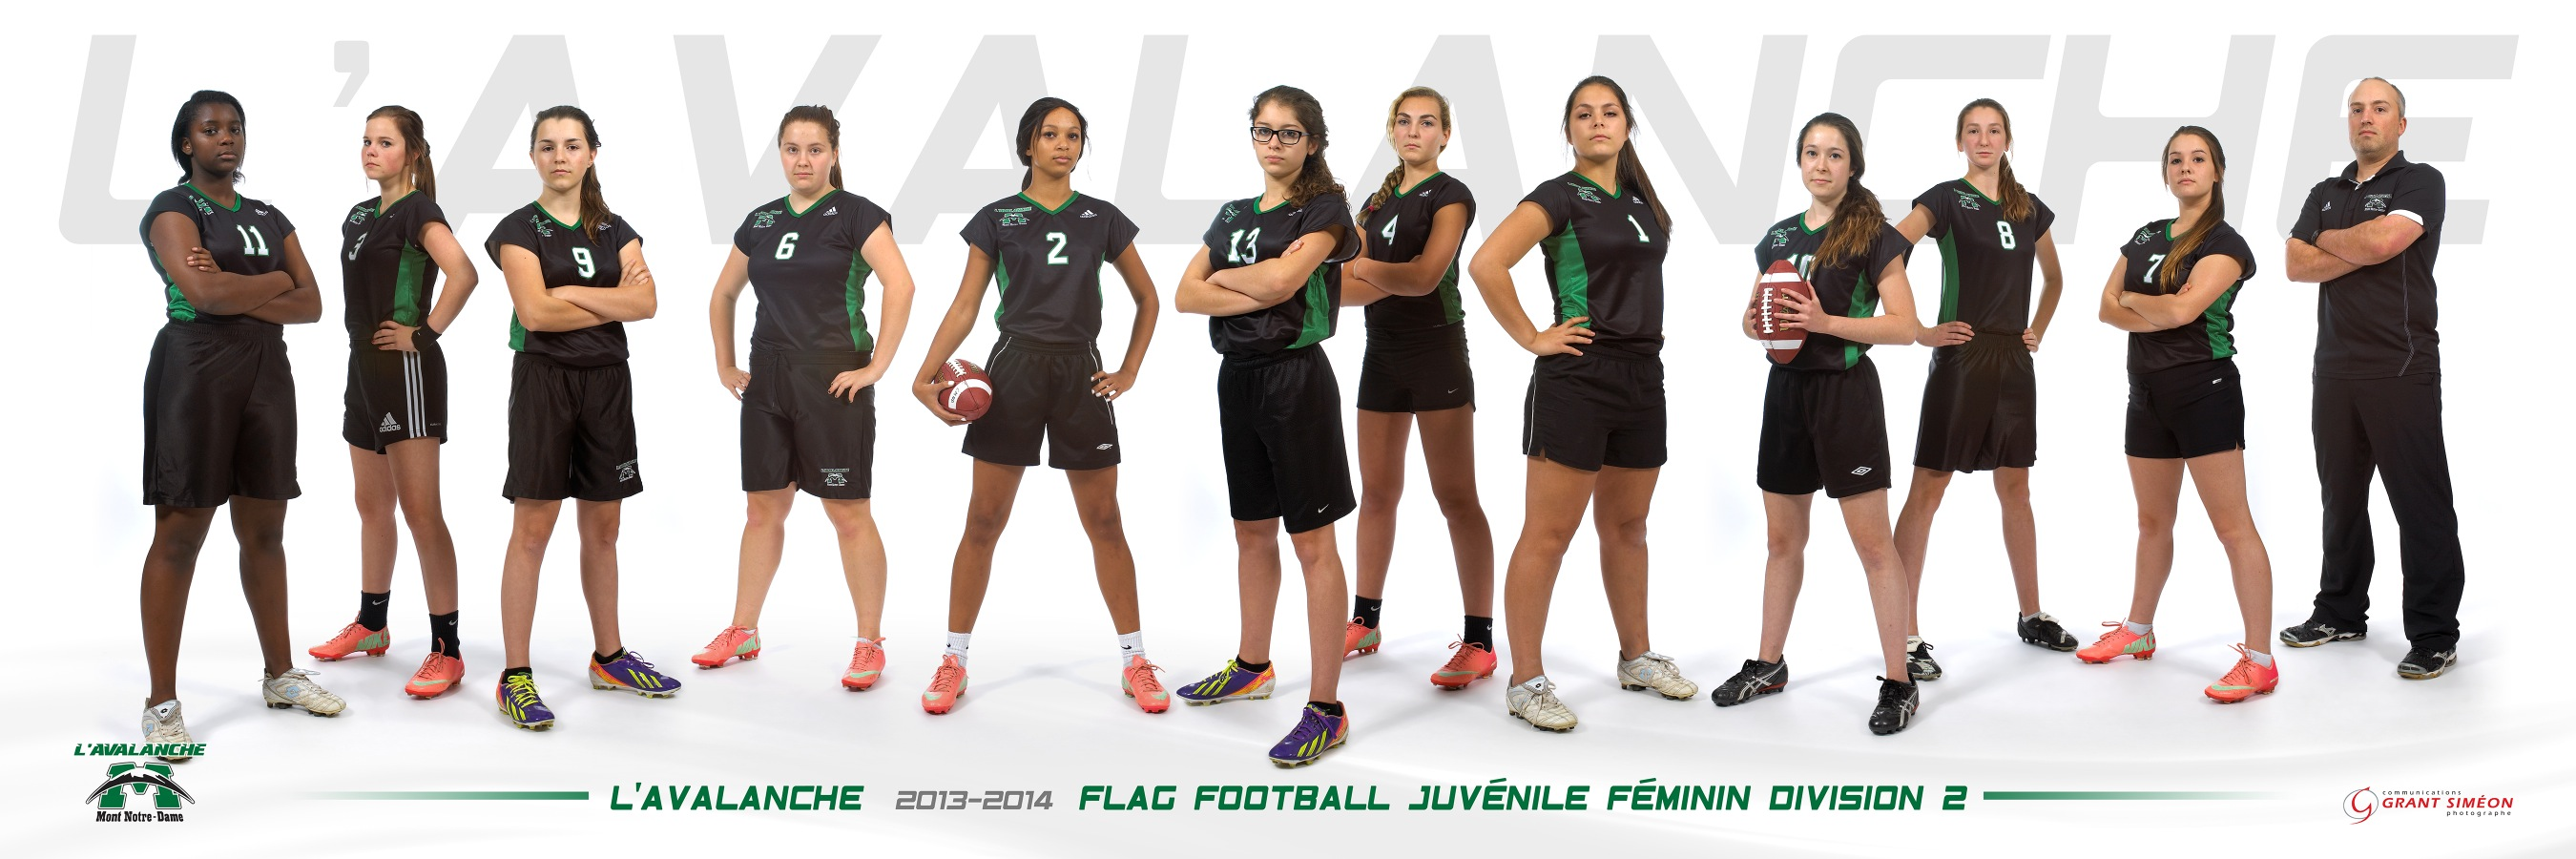 cmnd_flagfootball-juv-div-2-2013-2014